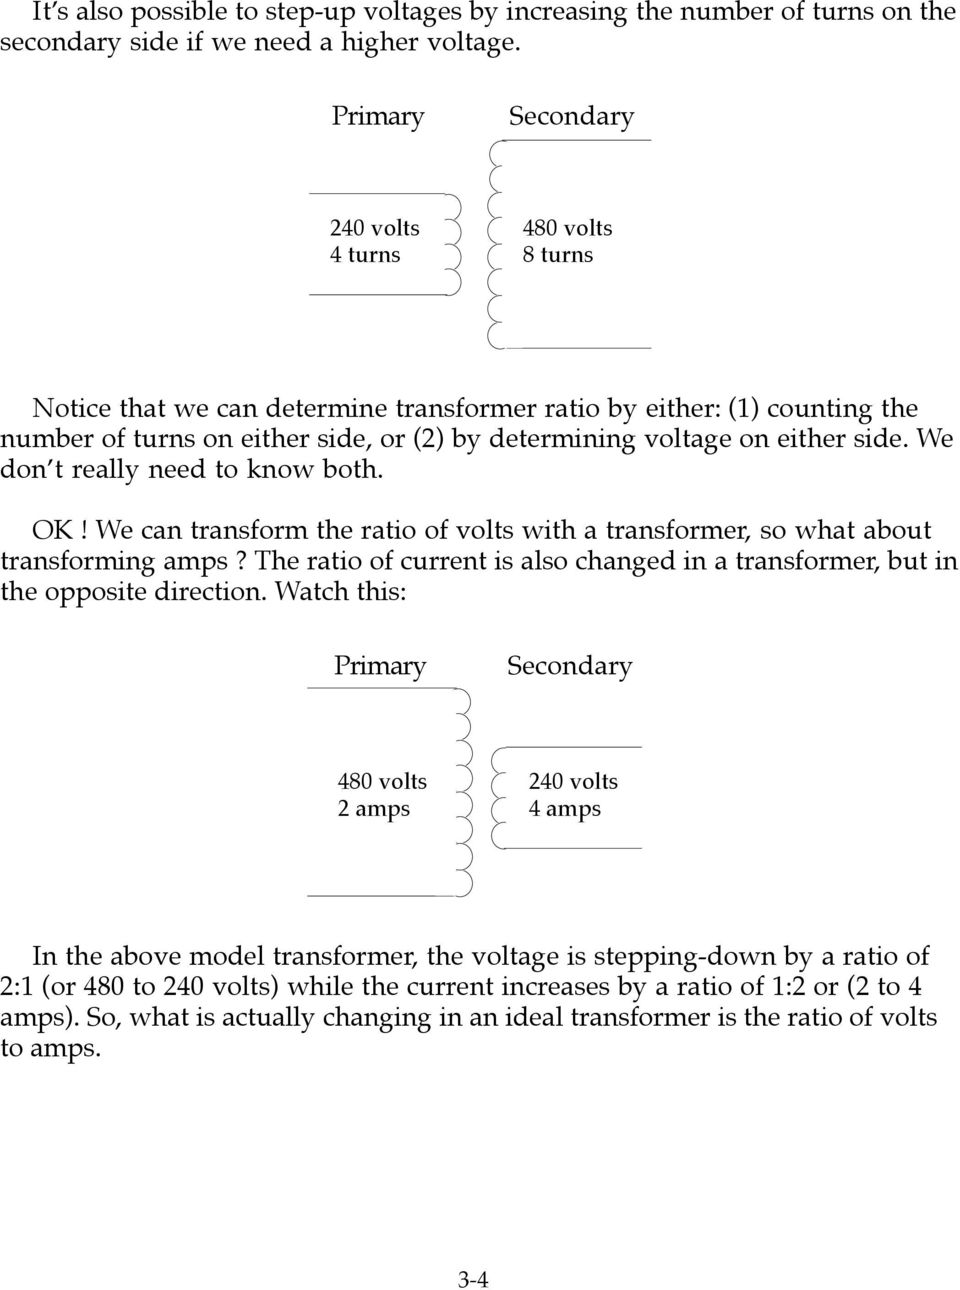 Transformer Calculations Pdf How To Increase Currents Of A E Don T Really Need Know Both Ok Can Transform The Ratio